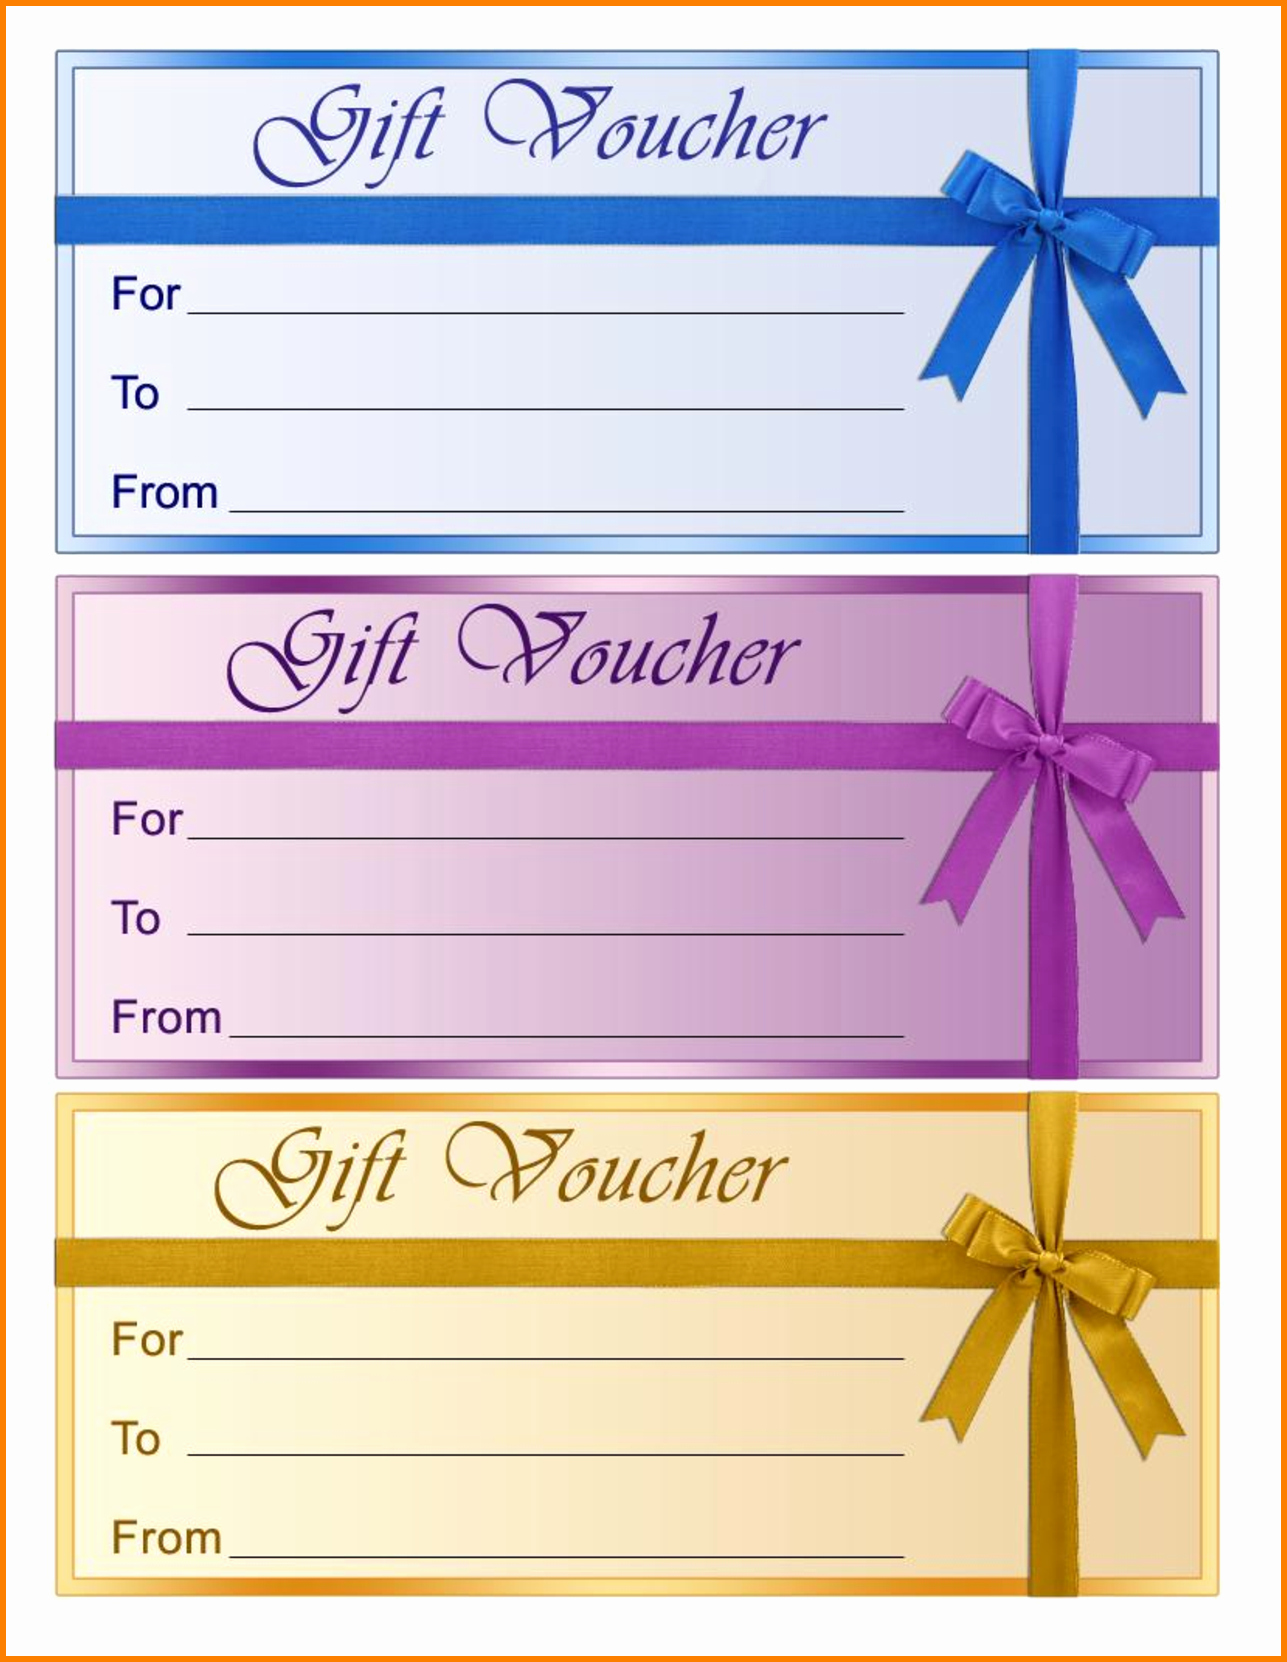 Print Gift Certificates Free Templates Elegant Perfect format Samples Of Gift Voucher and Certificate